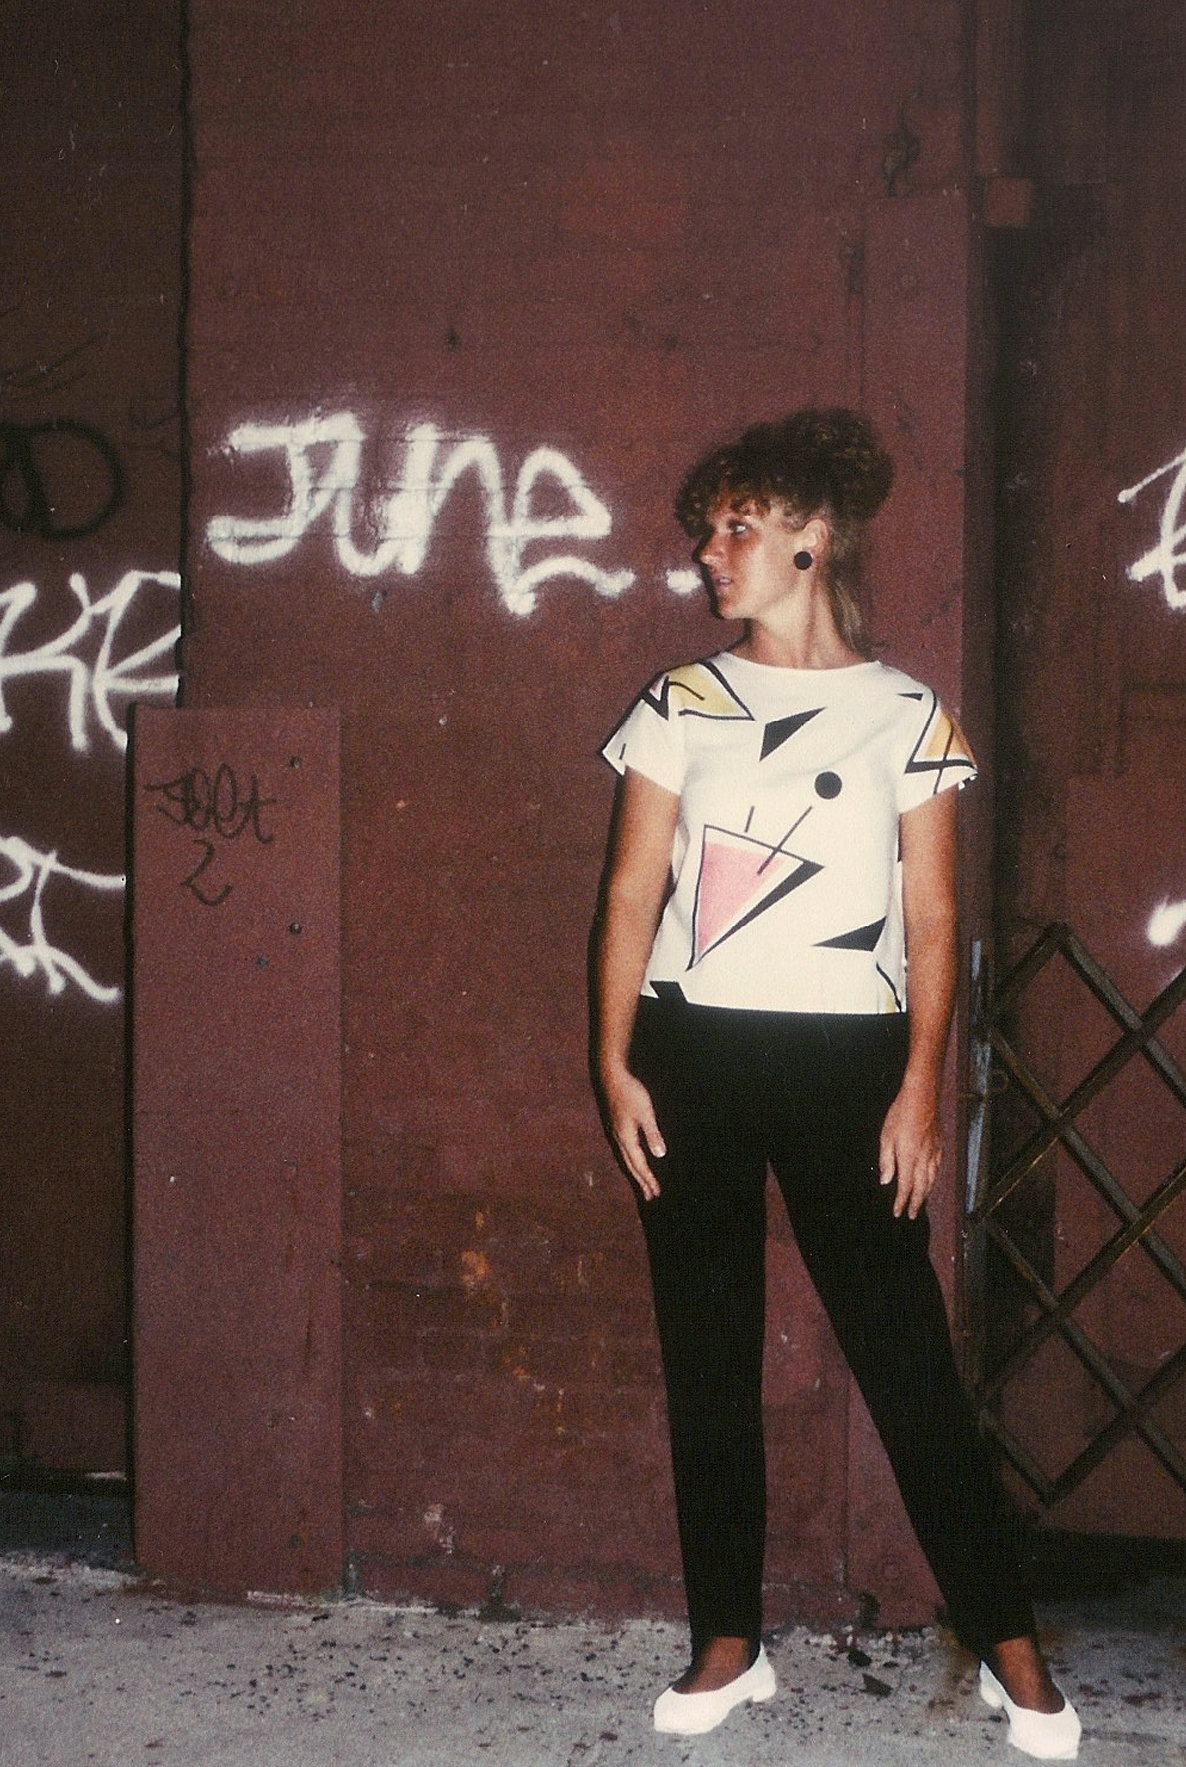 New York collection printed, cut and made by Rowena Luke-King. Photographed by Janise Everett; Brooklyn 1980.